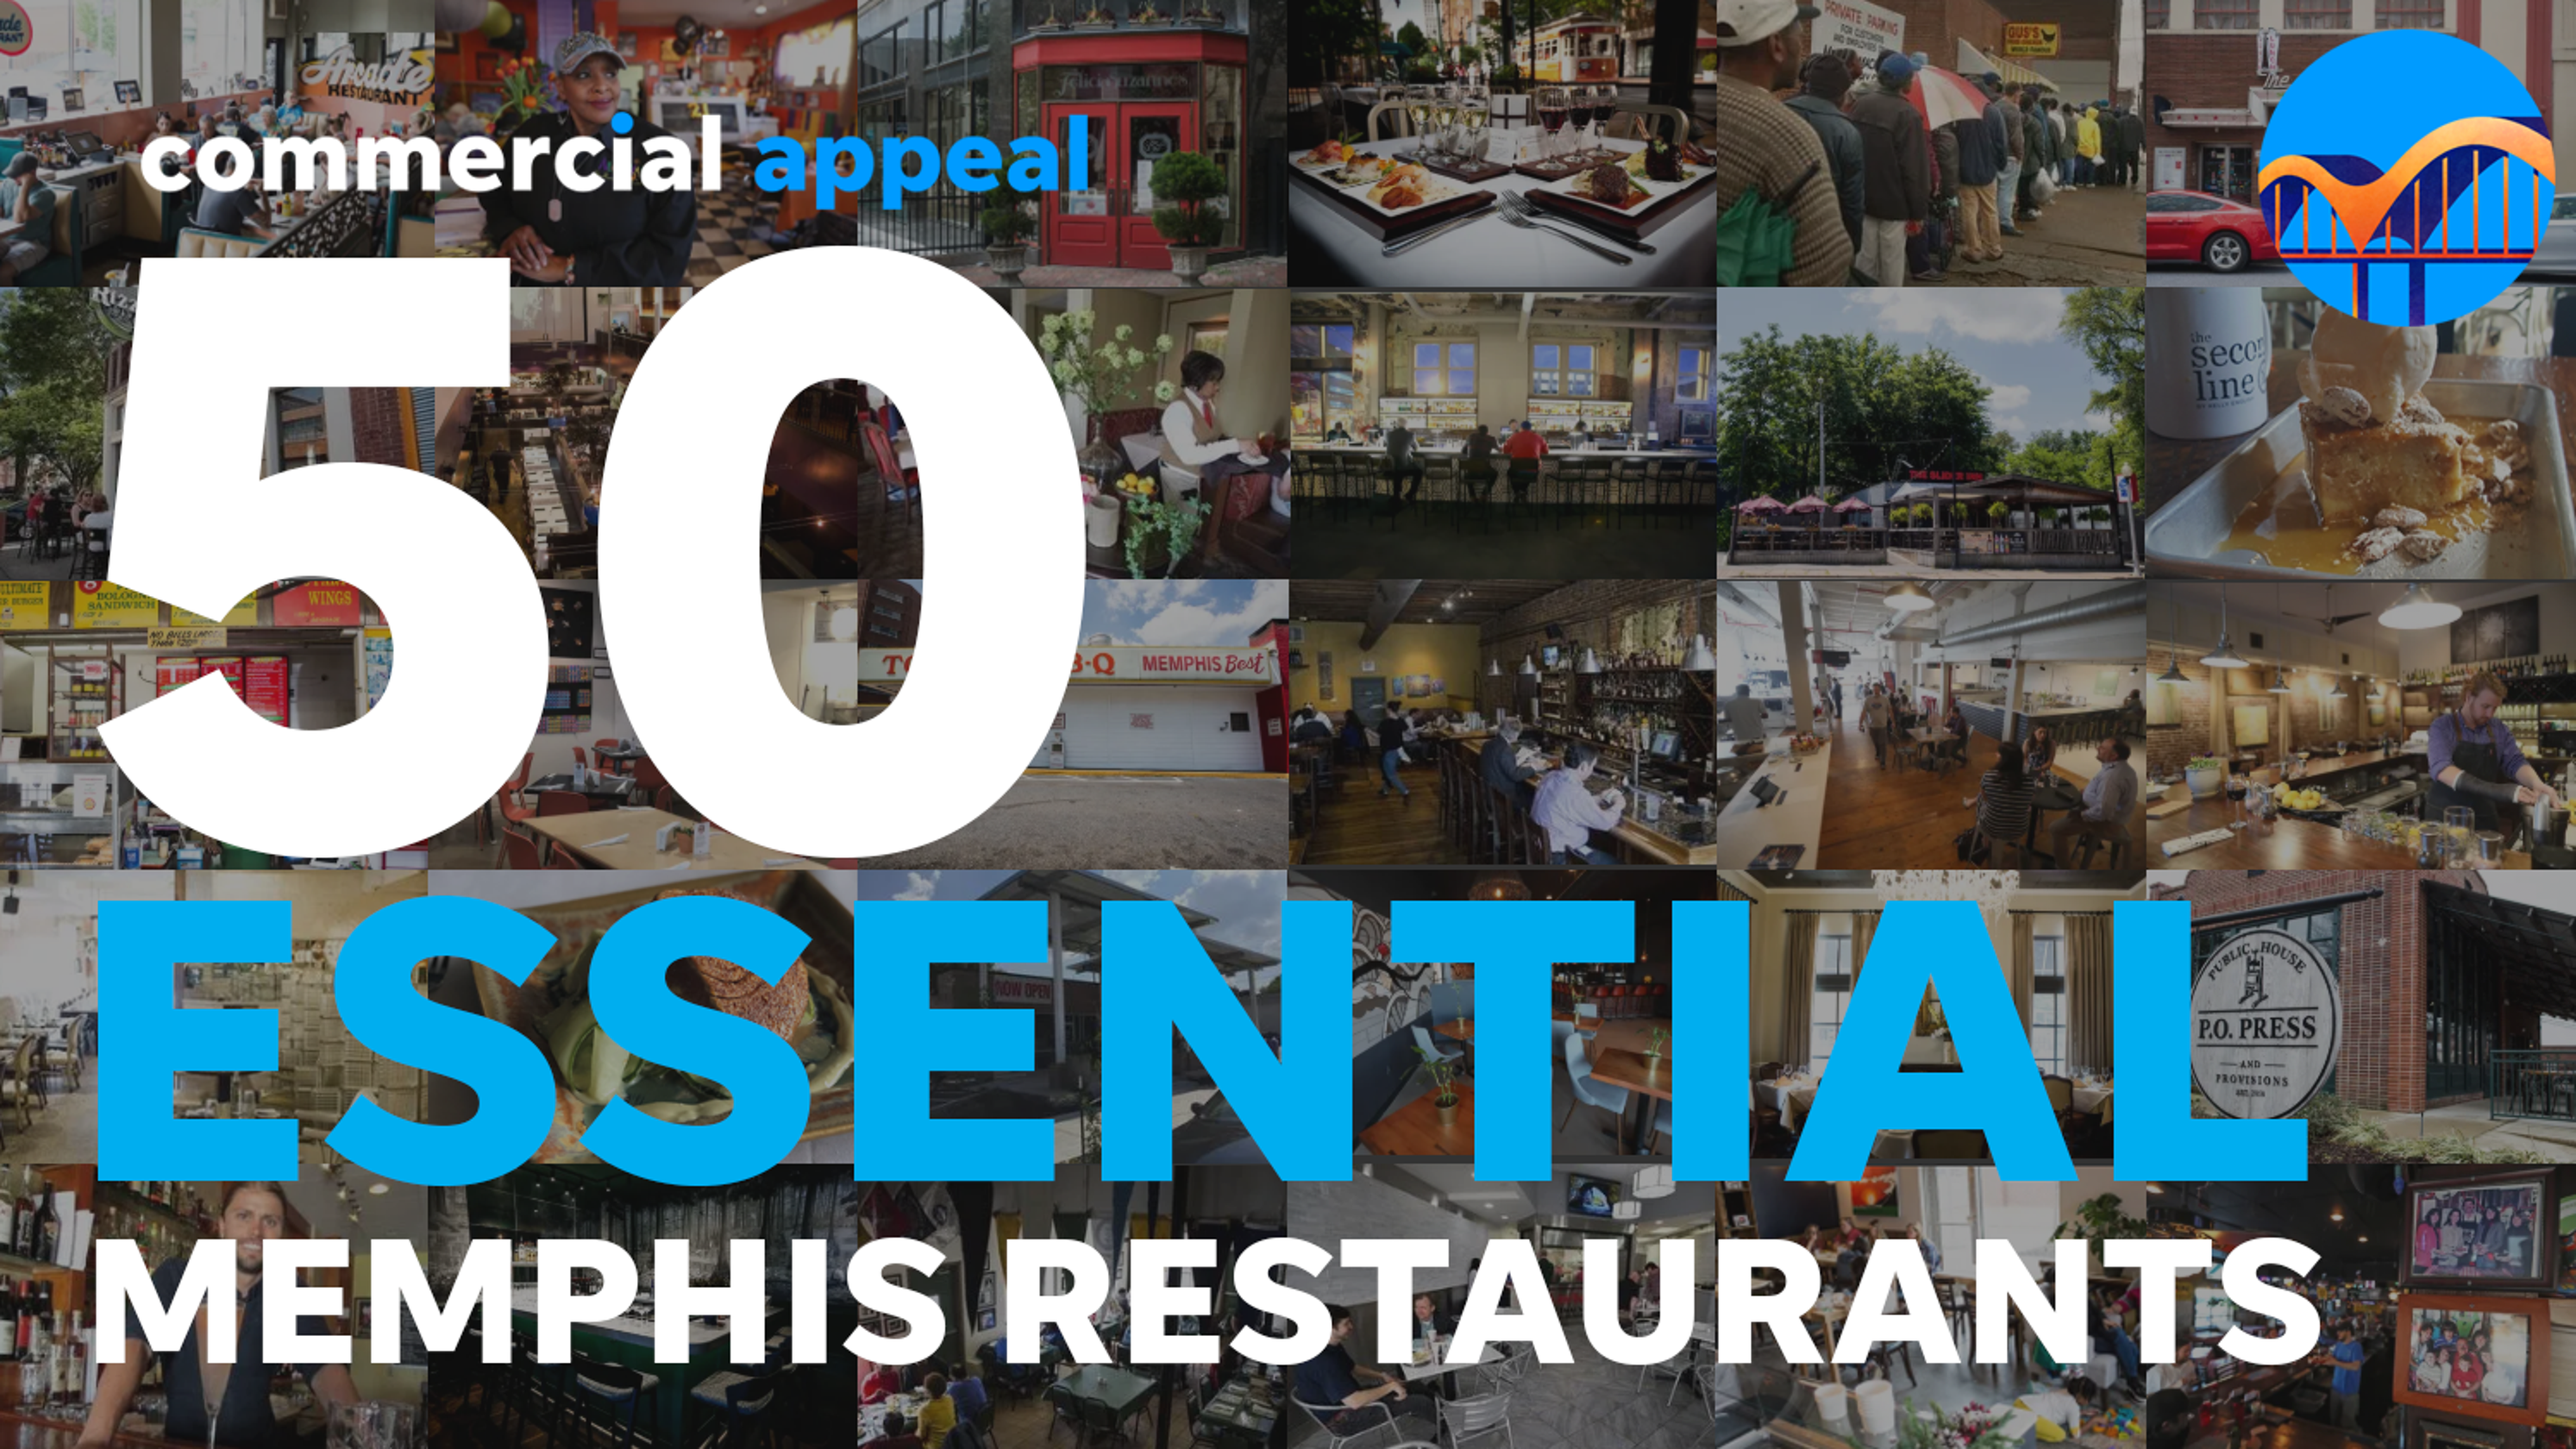 Preview of the 50 'must-try' restaurants in the Memphis area